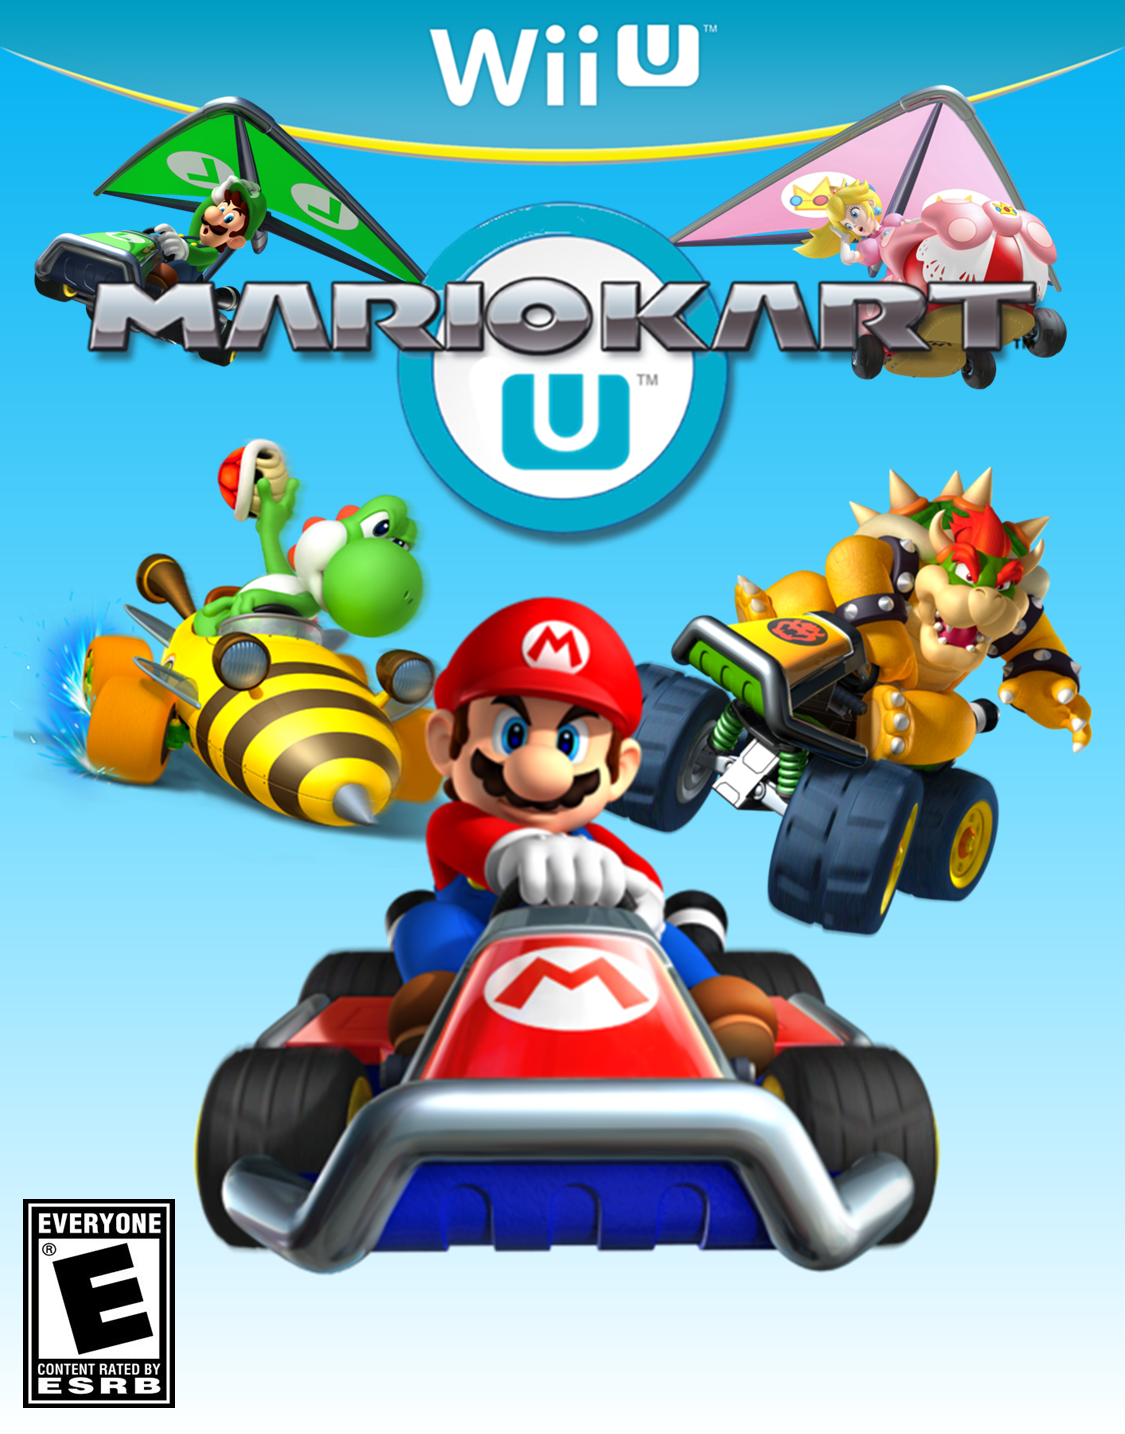 download mario kart 8 wii u jogos para pc baixar jogos pc. Black Bedroom Furniture Sets. Home Design Ideas